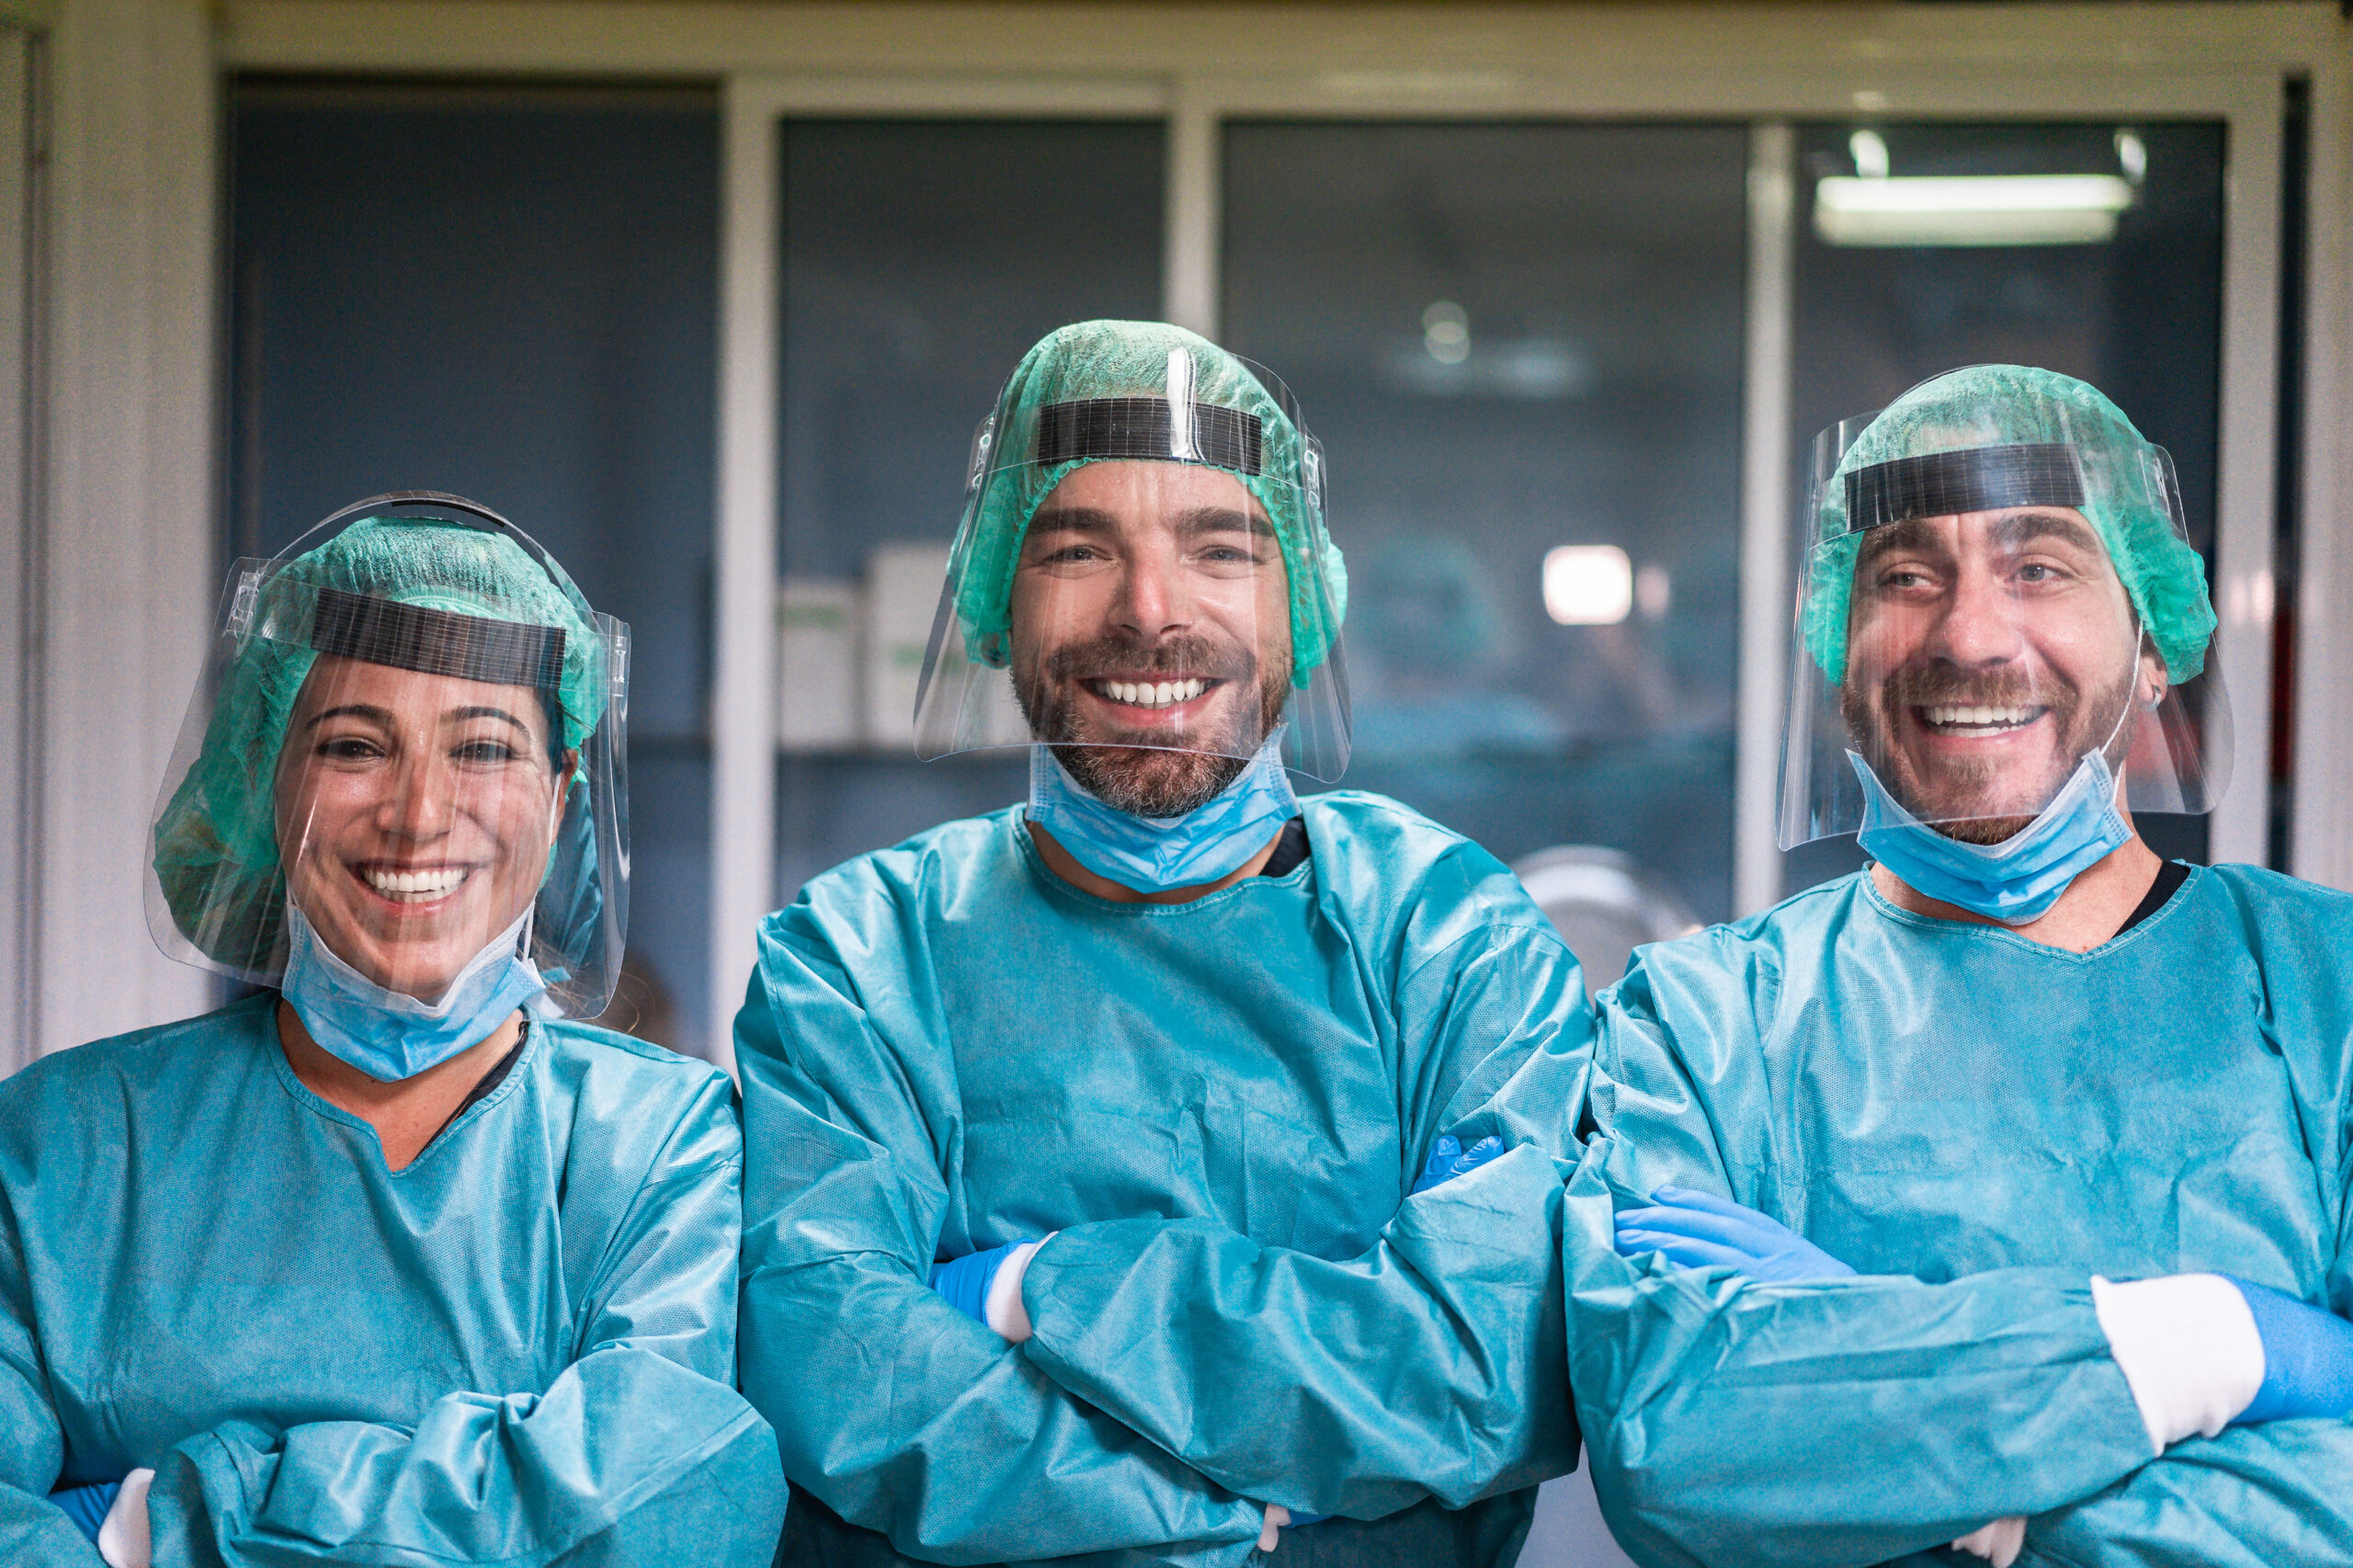 Surgical Staff Safety